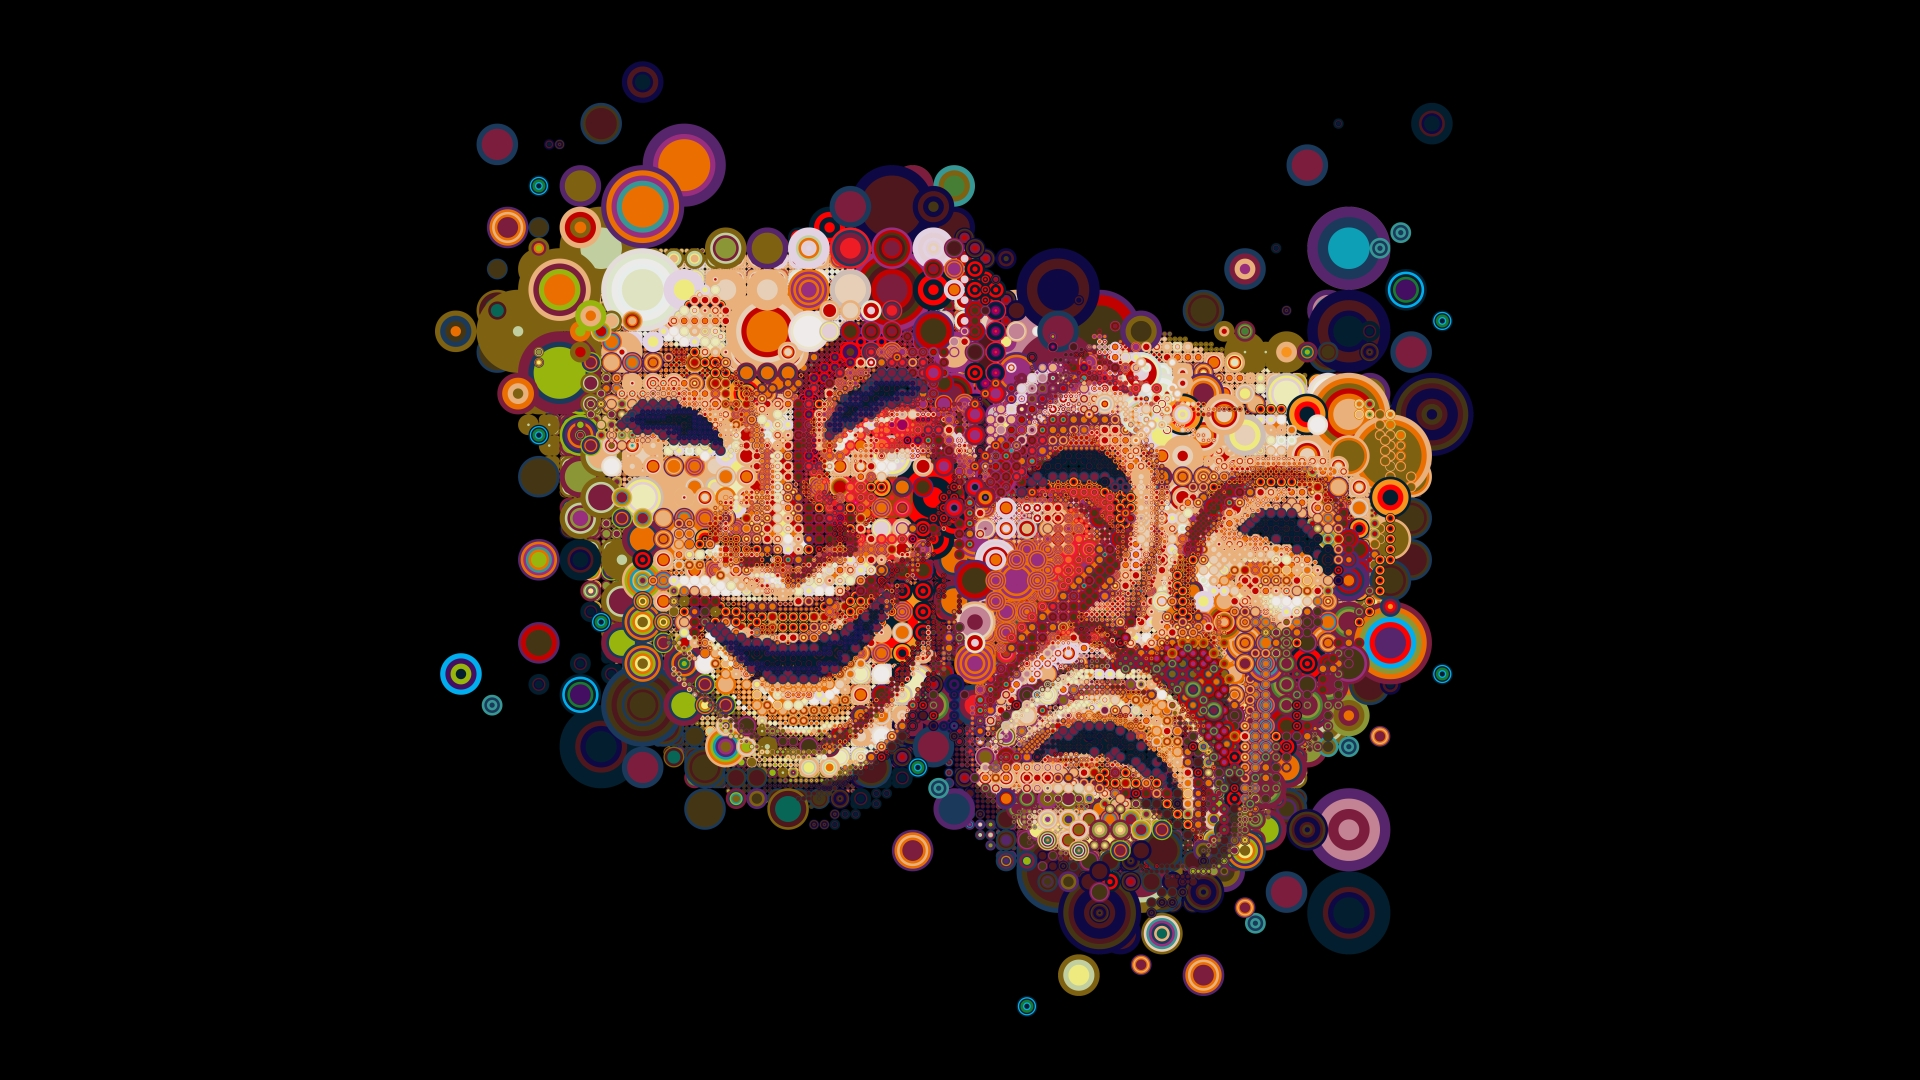 Download Wallpaper 1920x1080 Masks, Emotions, Colorful